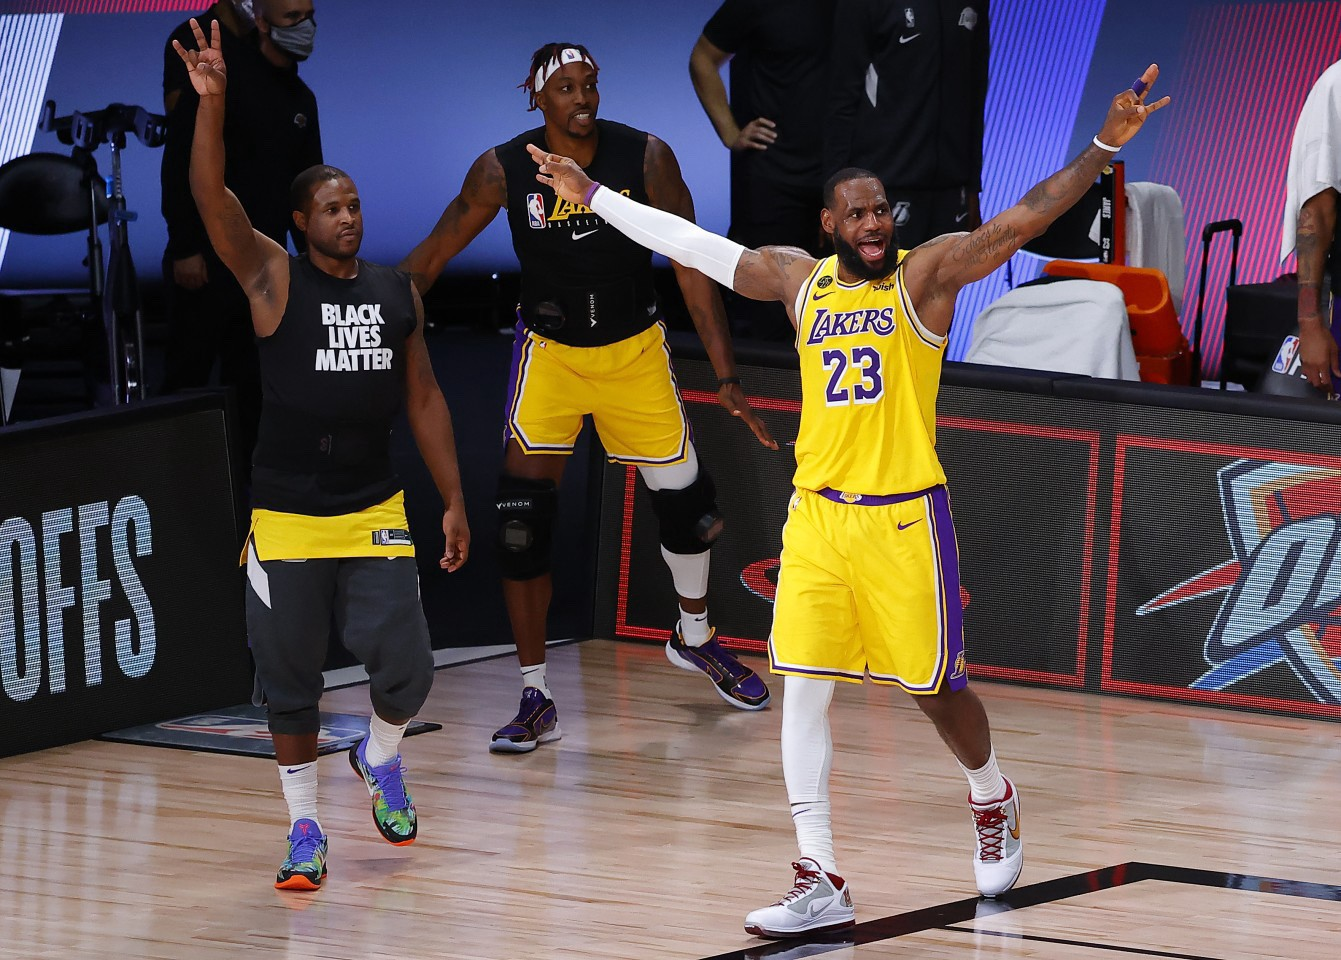 Los Angeles Lakers Obliterate Portland Trial Blazers With 111 88 Win In Game 2 To Even The Series By Joaquin Del Rosario Medium